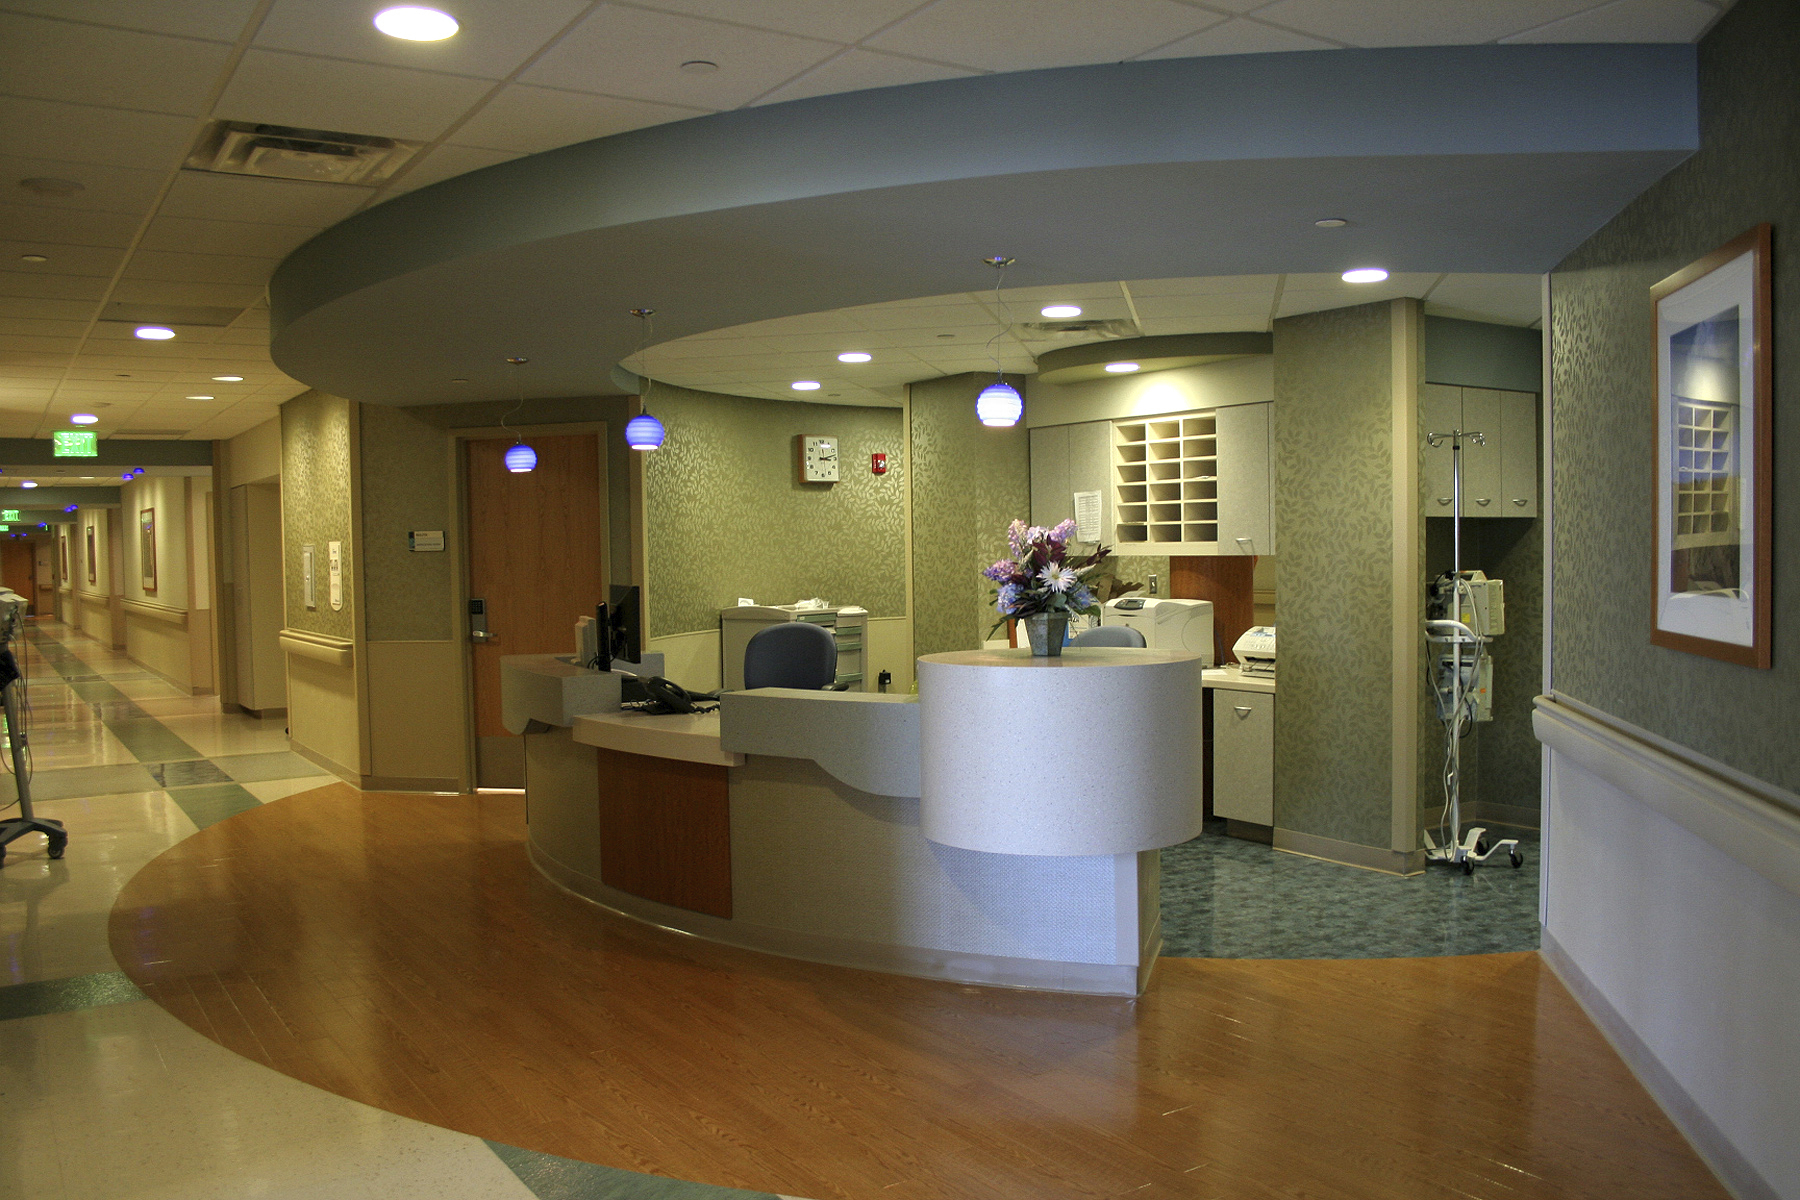 Some hospitals have moved away from using traditional centralized nursing stations in order to prevent large groups of people from talking near patient rooms, potentially disturbing those recovering from procedures. Photo © iStockphoto.com/Domars